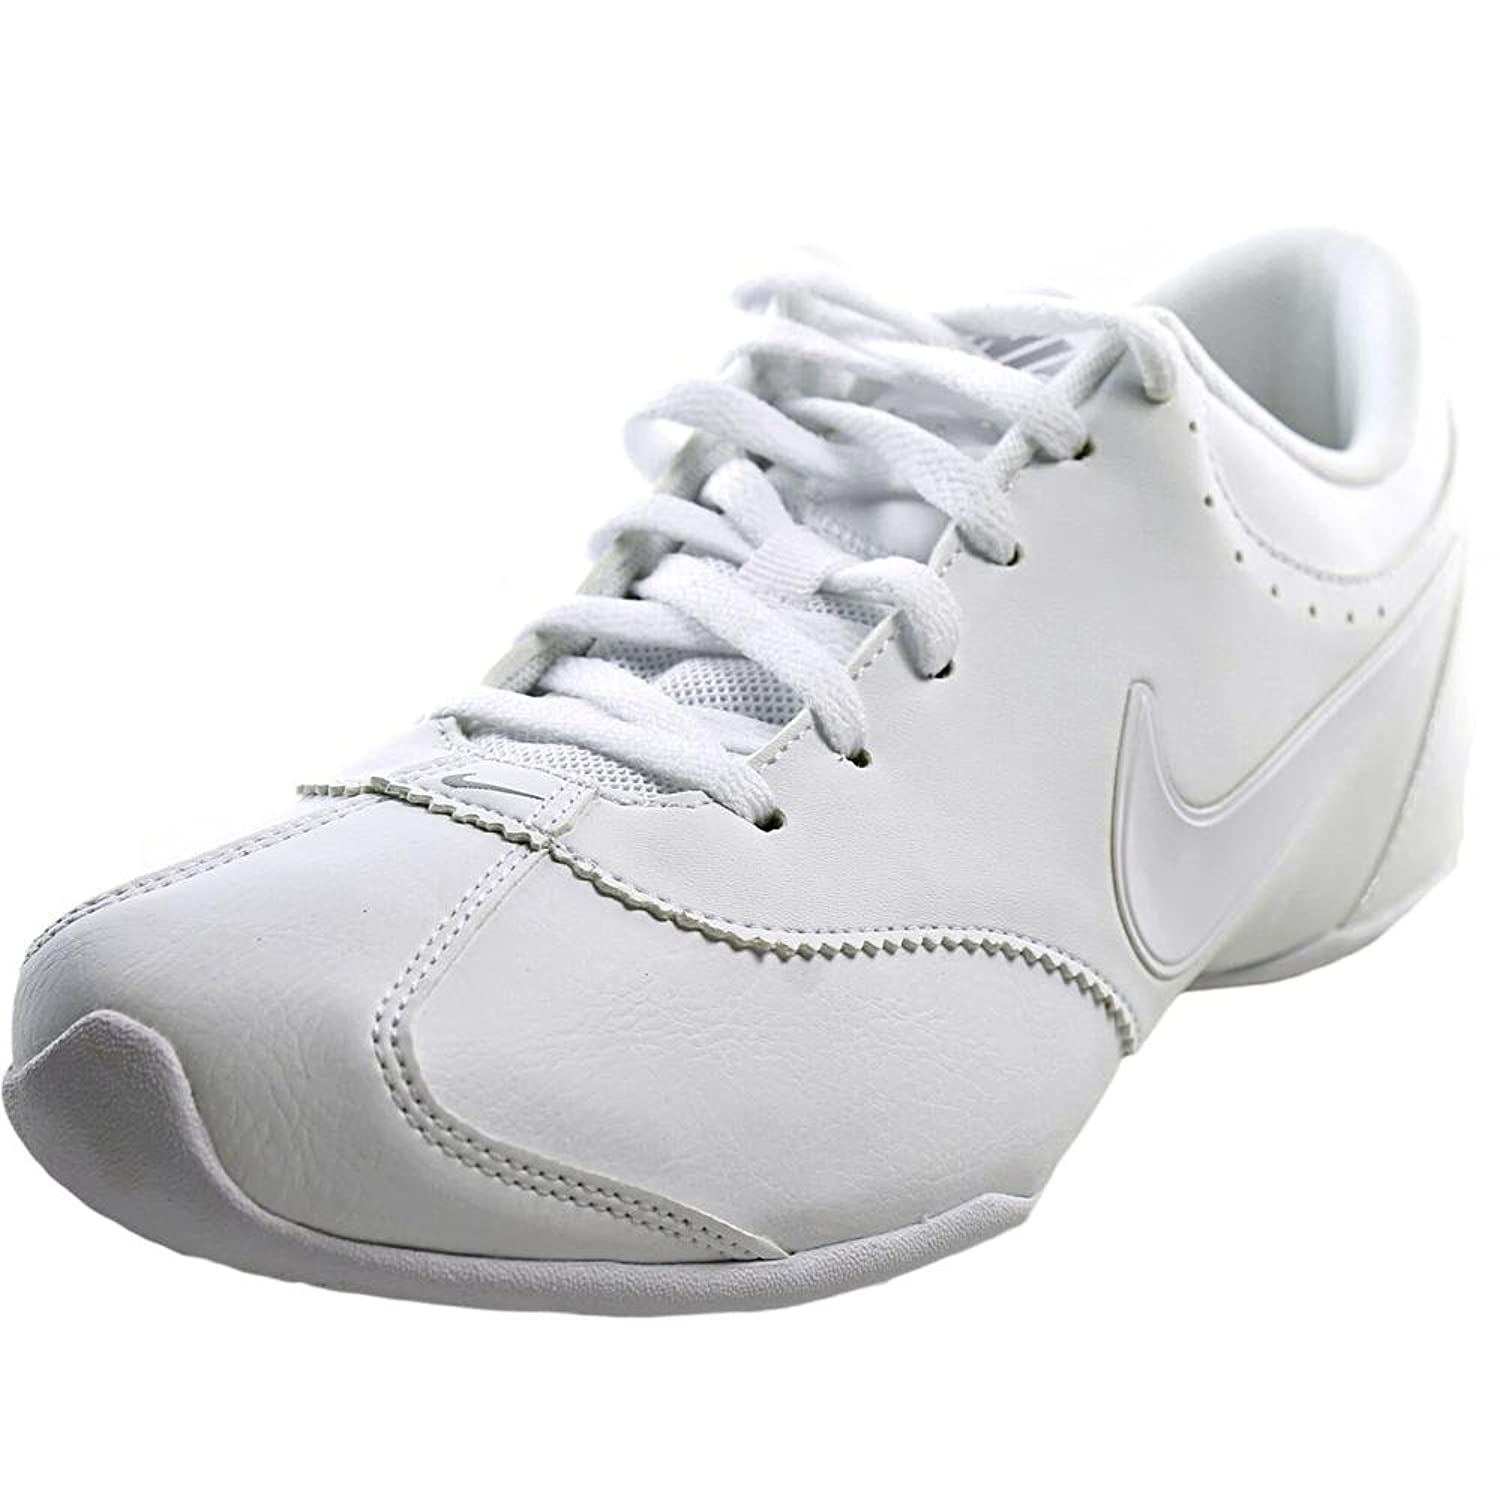 com nike women s cheer unite sneakers team sports ...